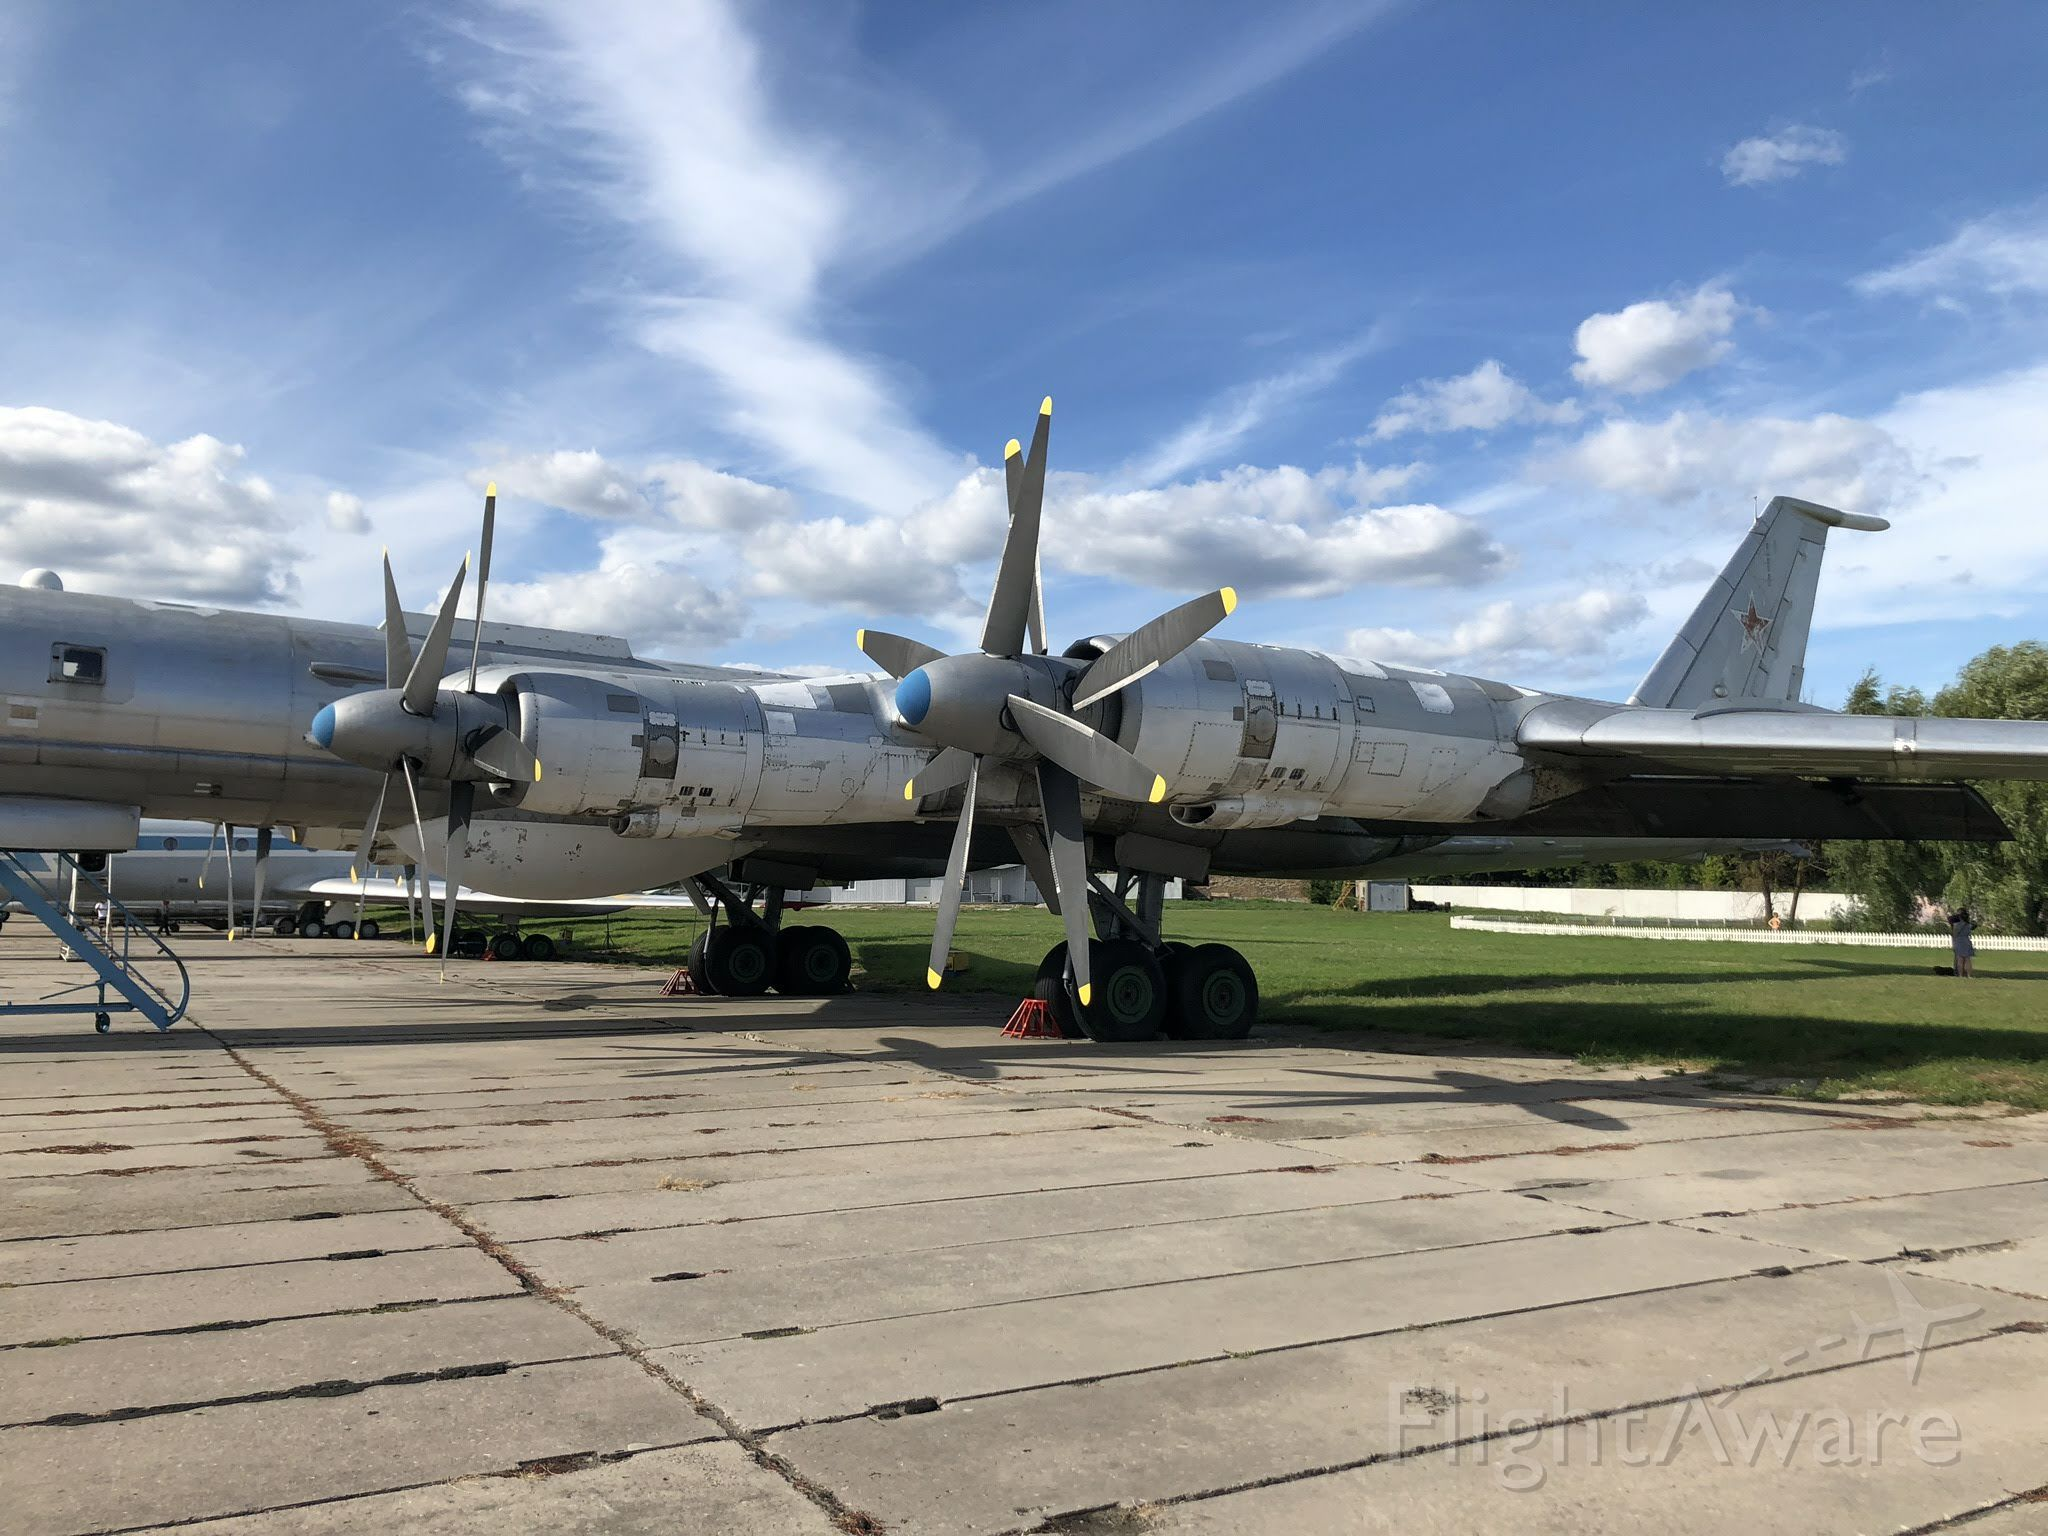 """Tupolev Tu-142 — - Tu-95 """"Bear"""" is one of the loudest military aircraft, particulary because the tips of the propeller blades move faster than the speed of sound. On display at the Oleg Antonov State Aviation Museum. Kiev-Ukraine, Aug 2019."""